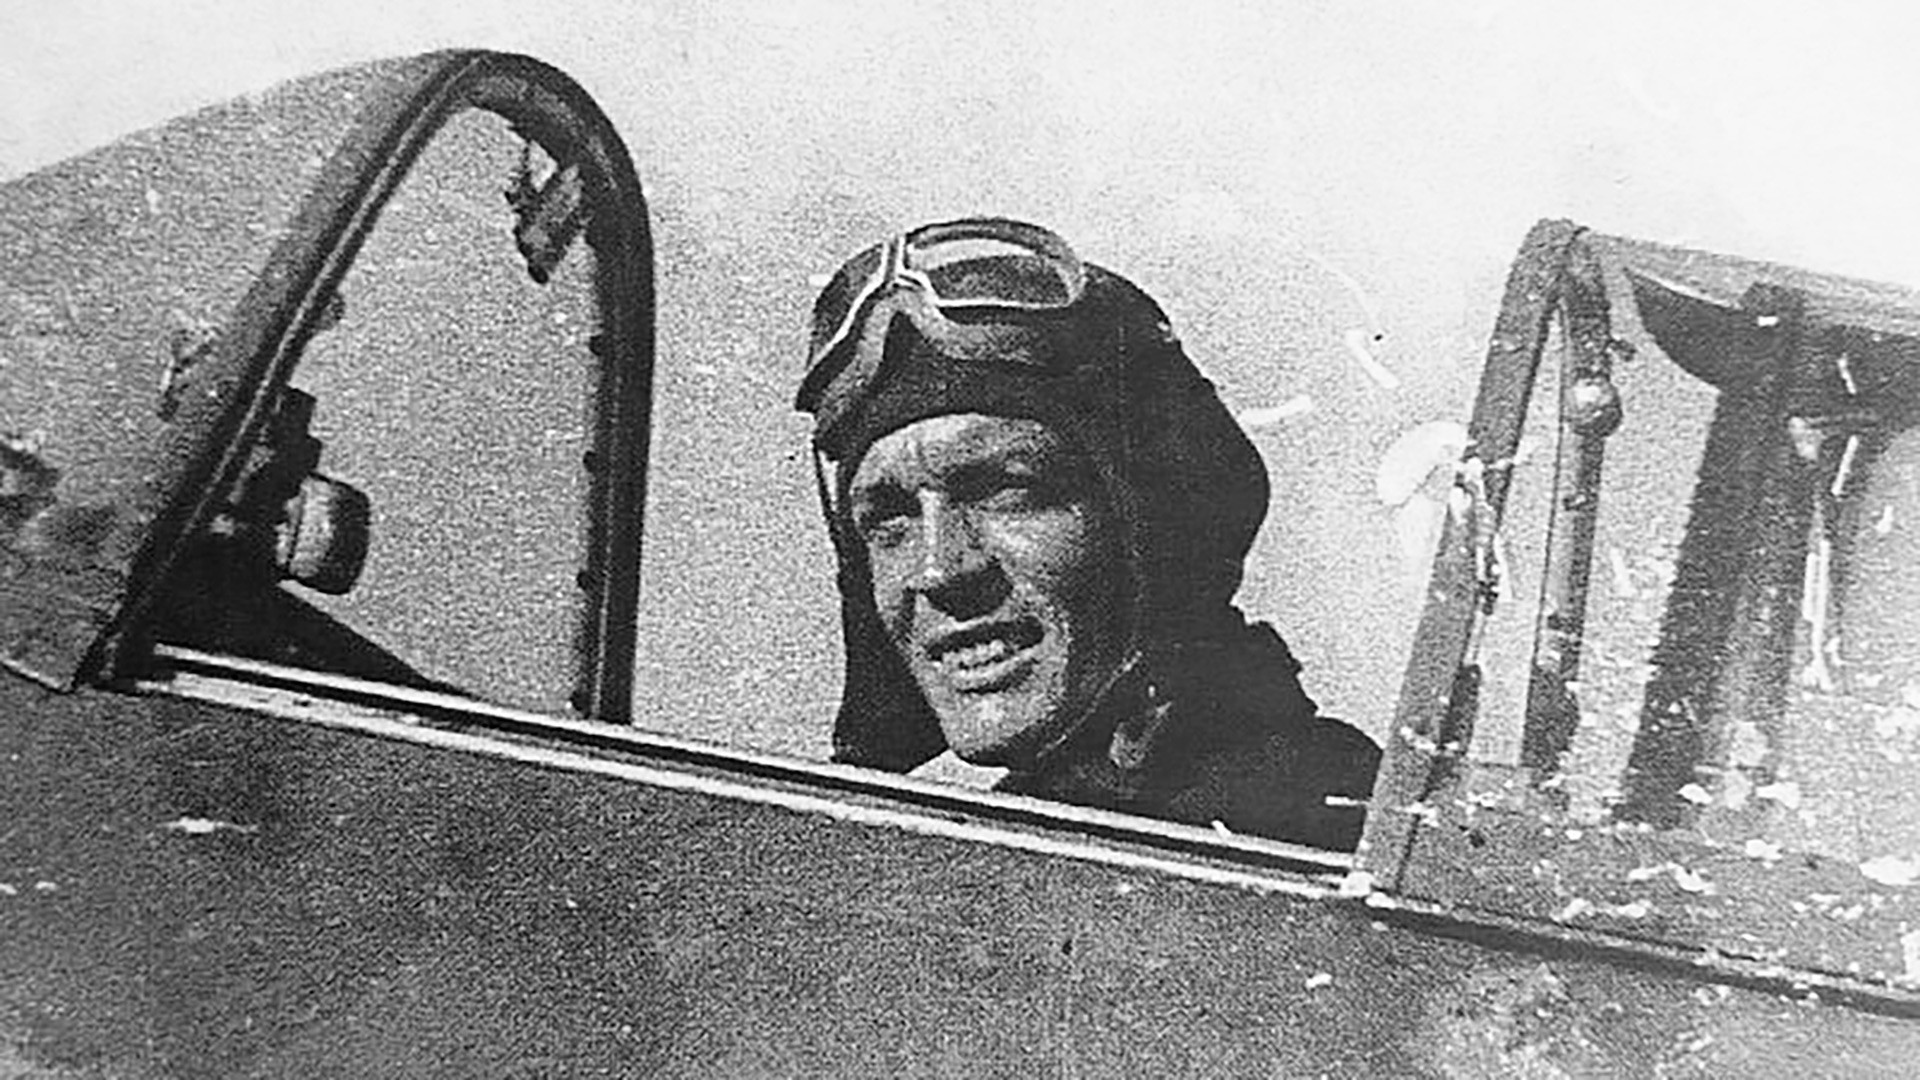 French pilot Roger Penverne in the cockpit of Yak-3 fighter